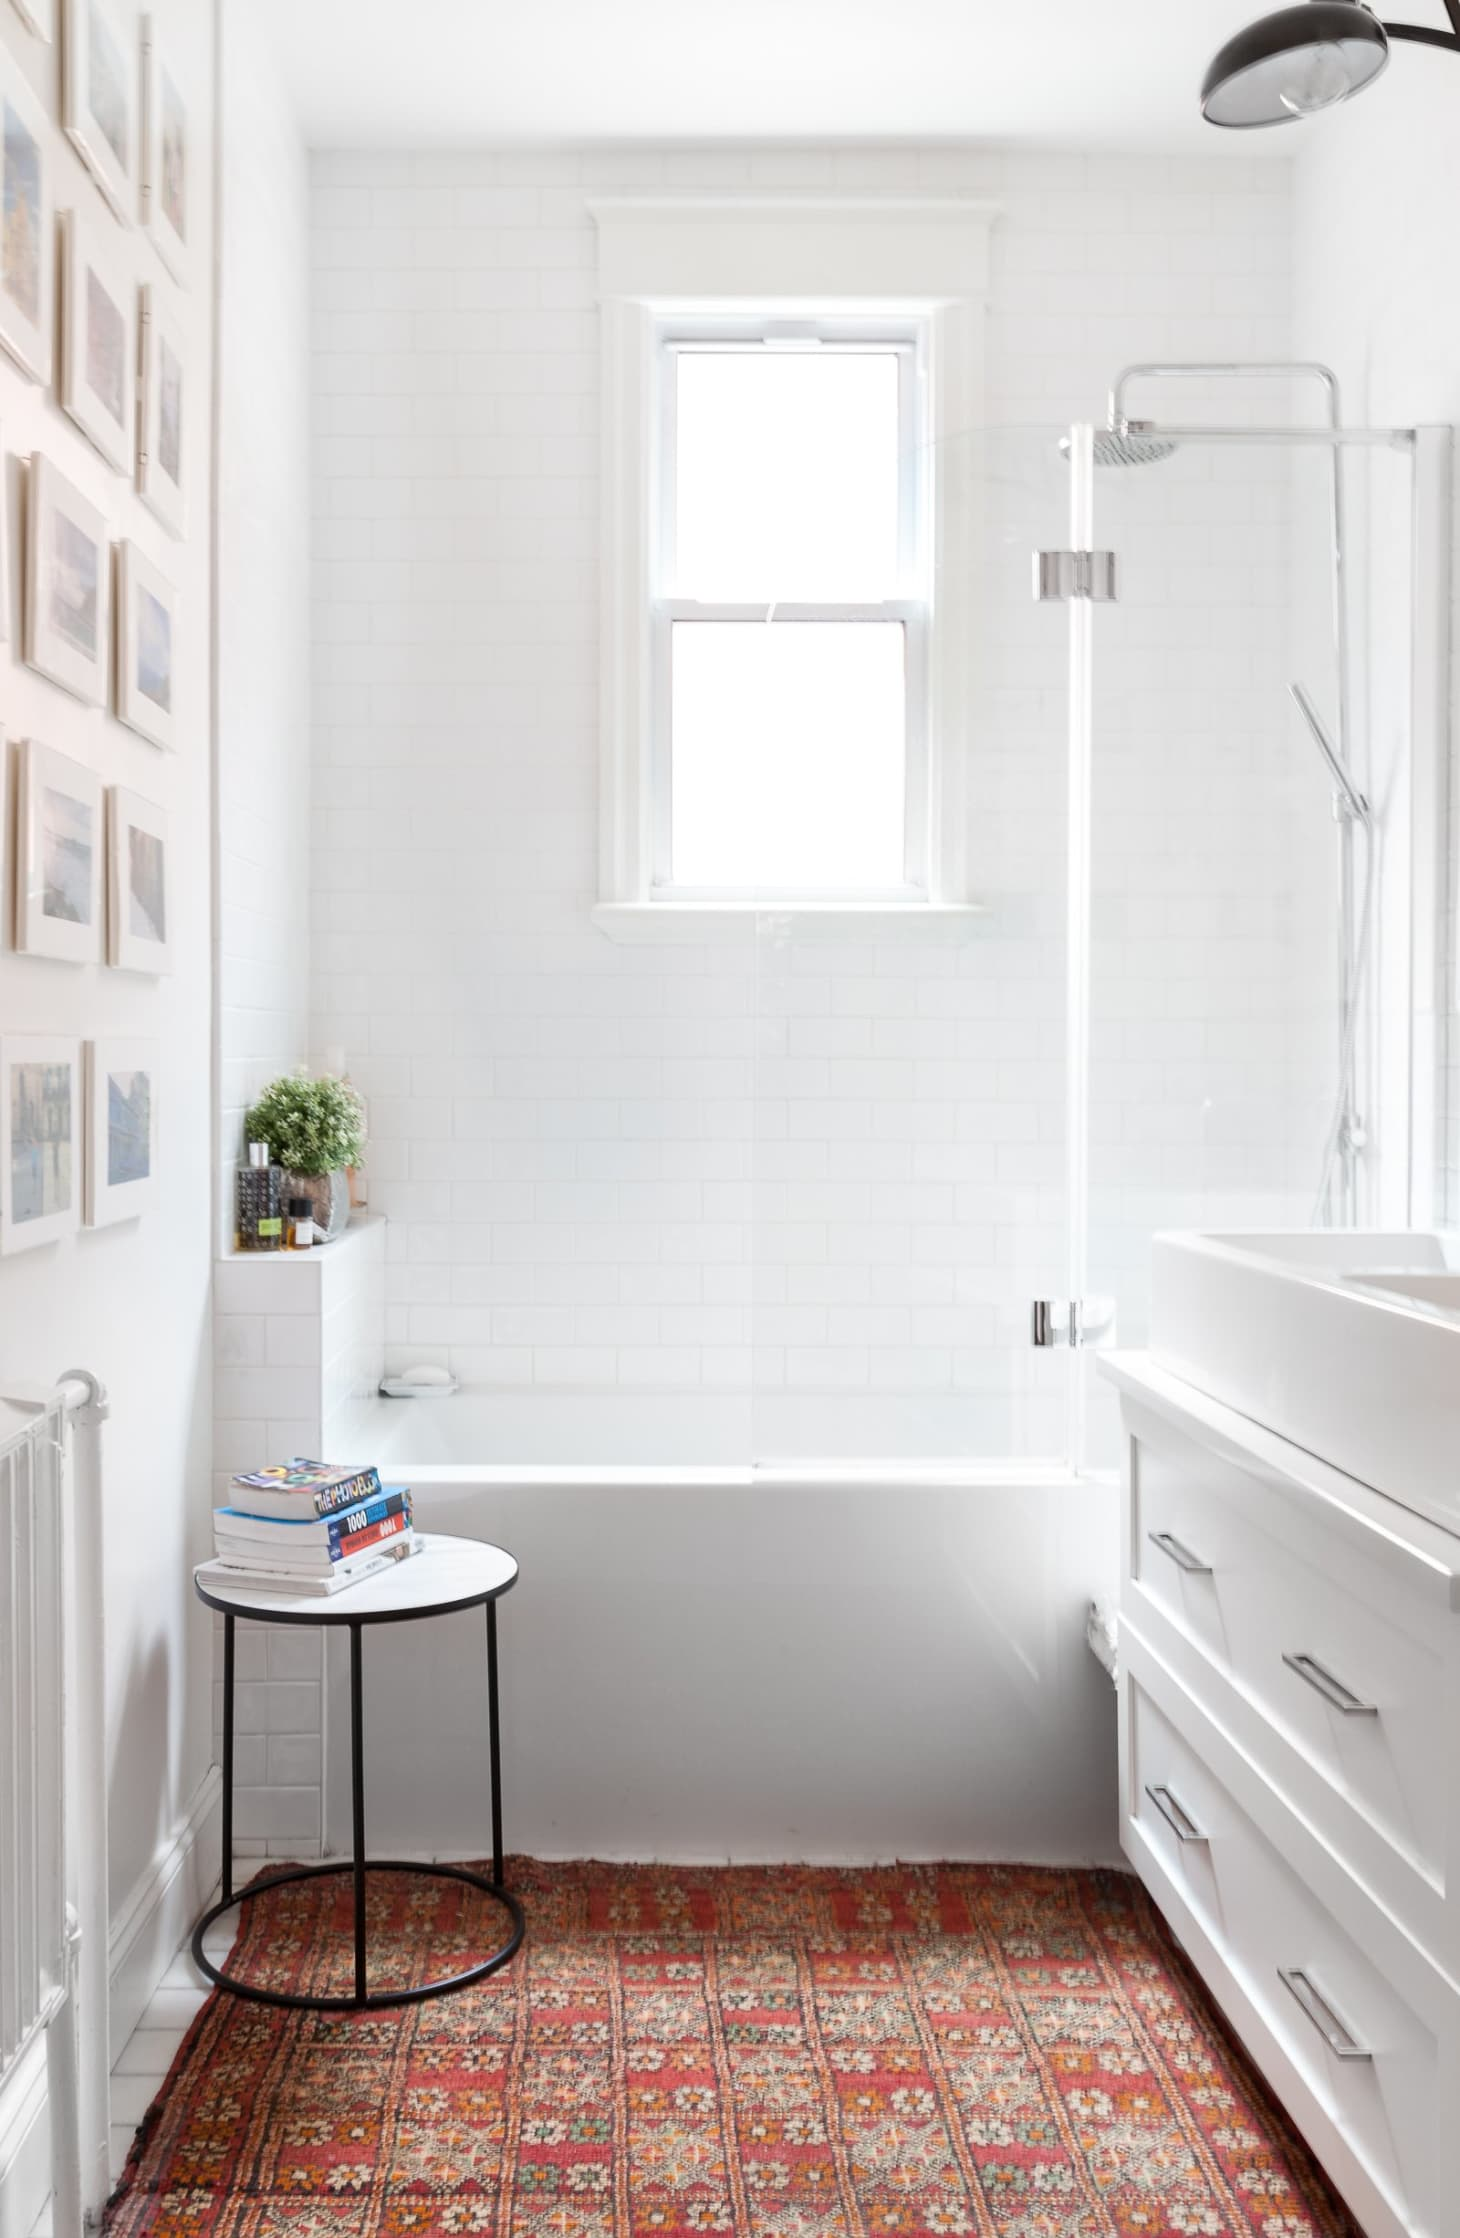 Small Bathroom Design Ideas 7 Beautiful Remodels Apartment Therapy